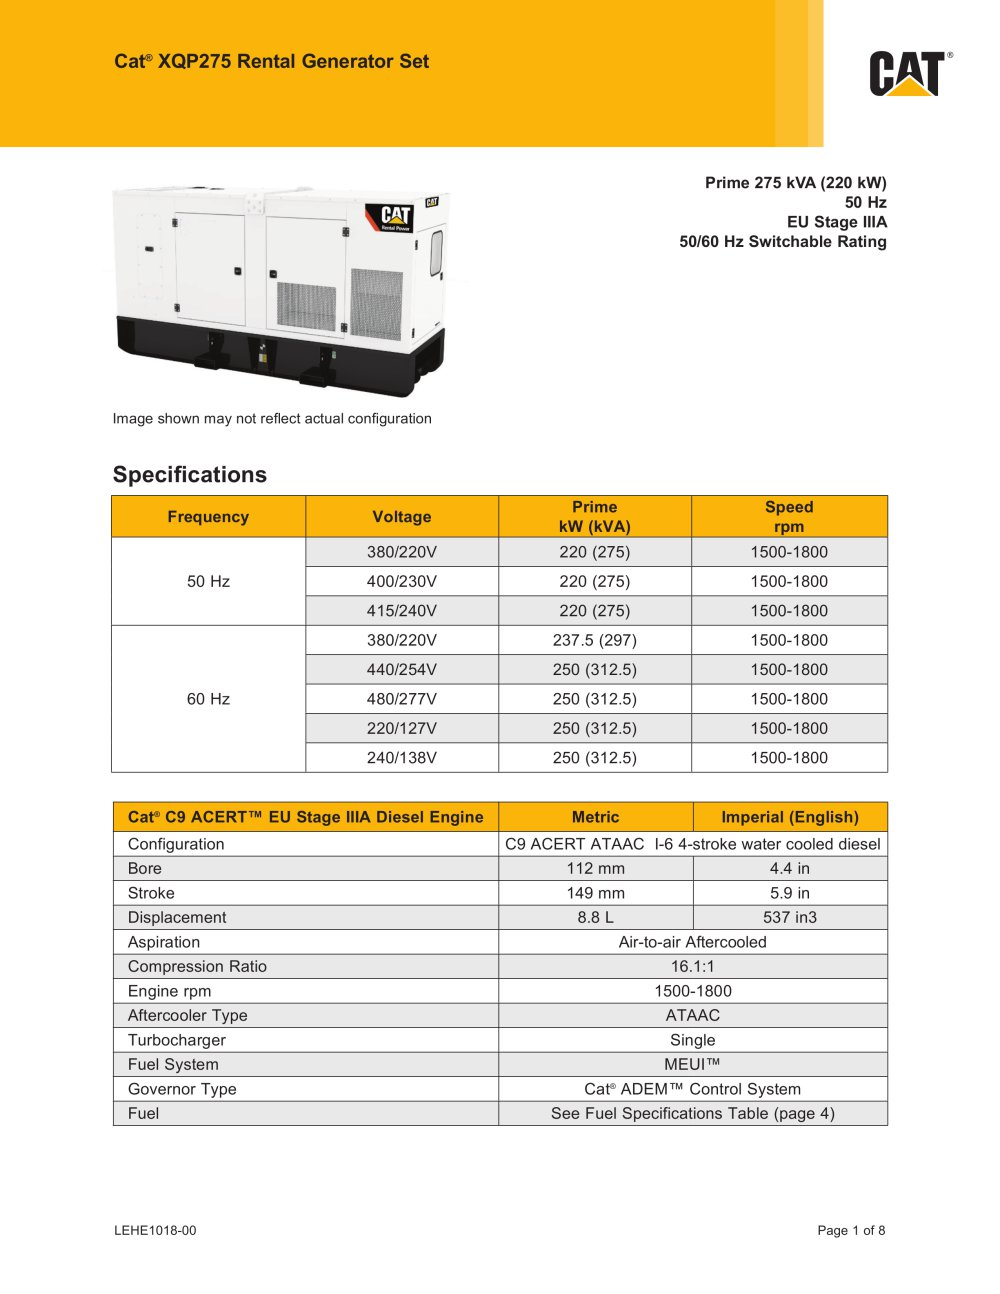 Xqp275 Rental Generator Caterpillar Electric Power Pdf Catalogs Engine Molded Case Circuit Breaker Mccb Line 1 8 Pages